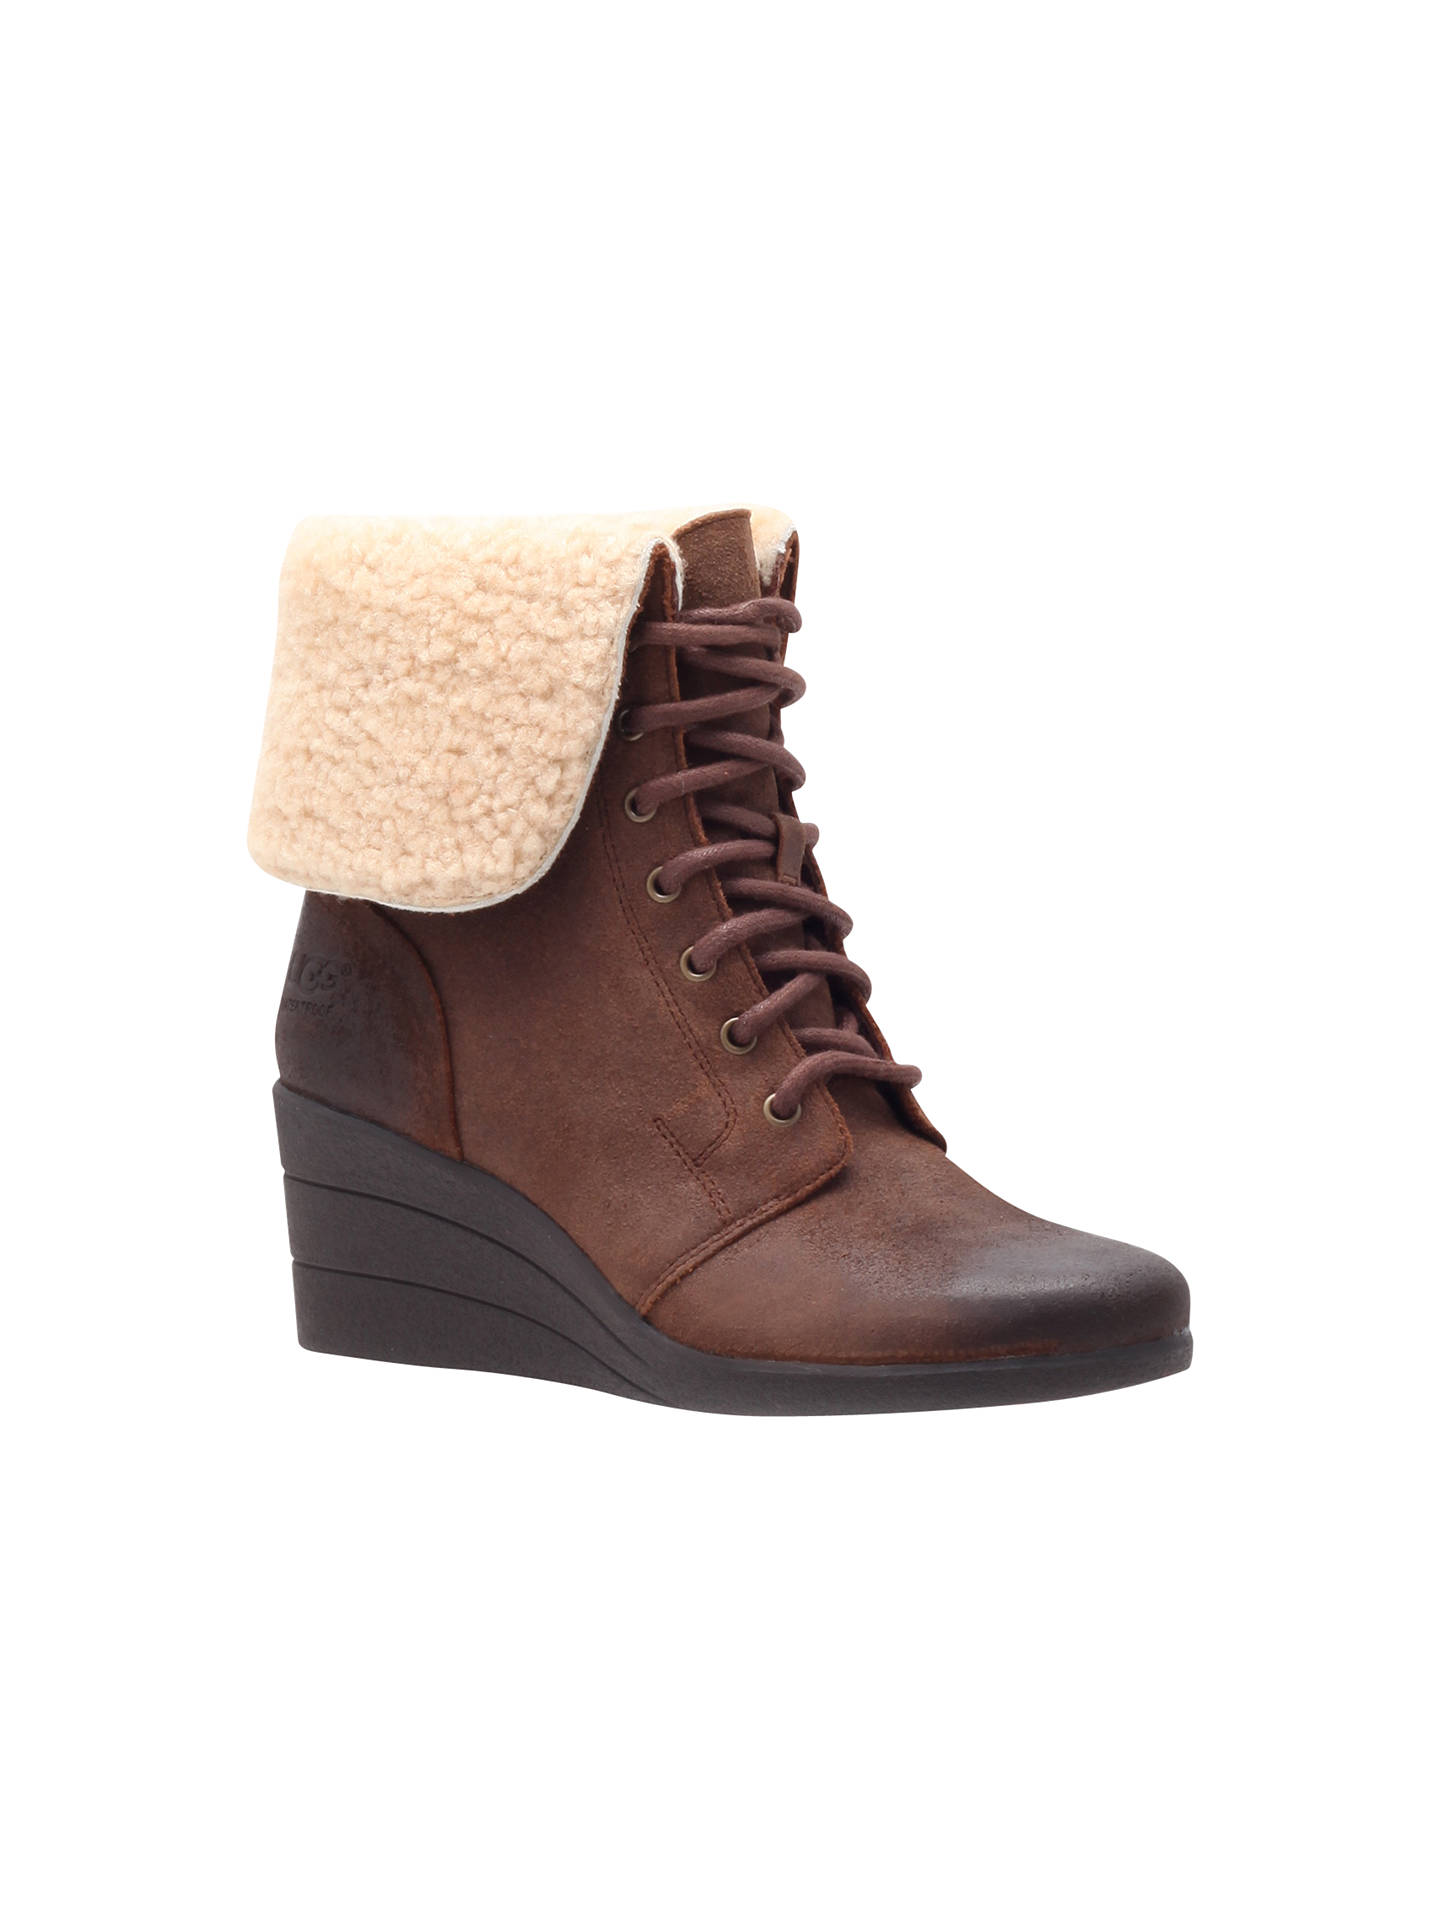 BuyUGG Zea Wedge Ankle Boots, Brown, 3 Online at johnlewis.com